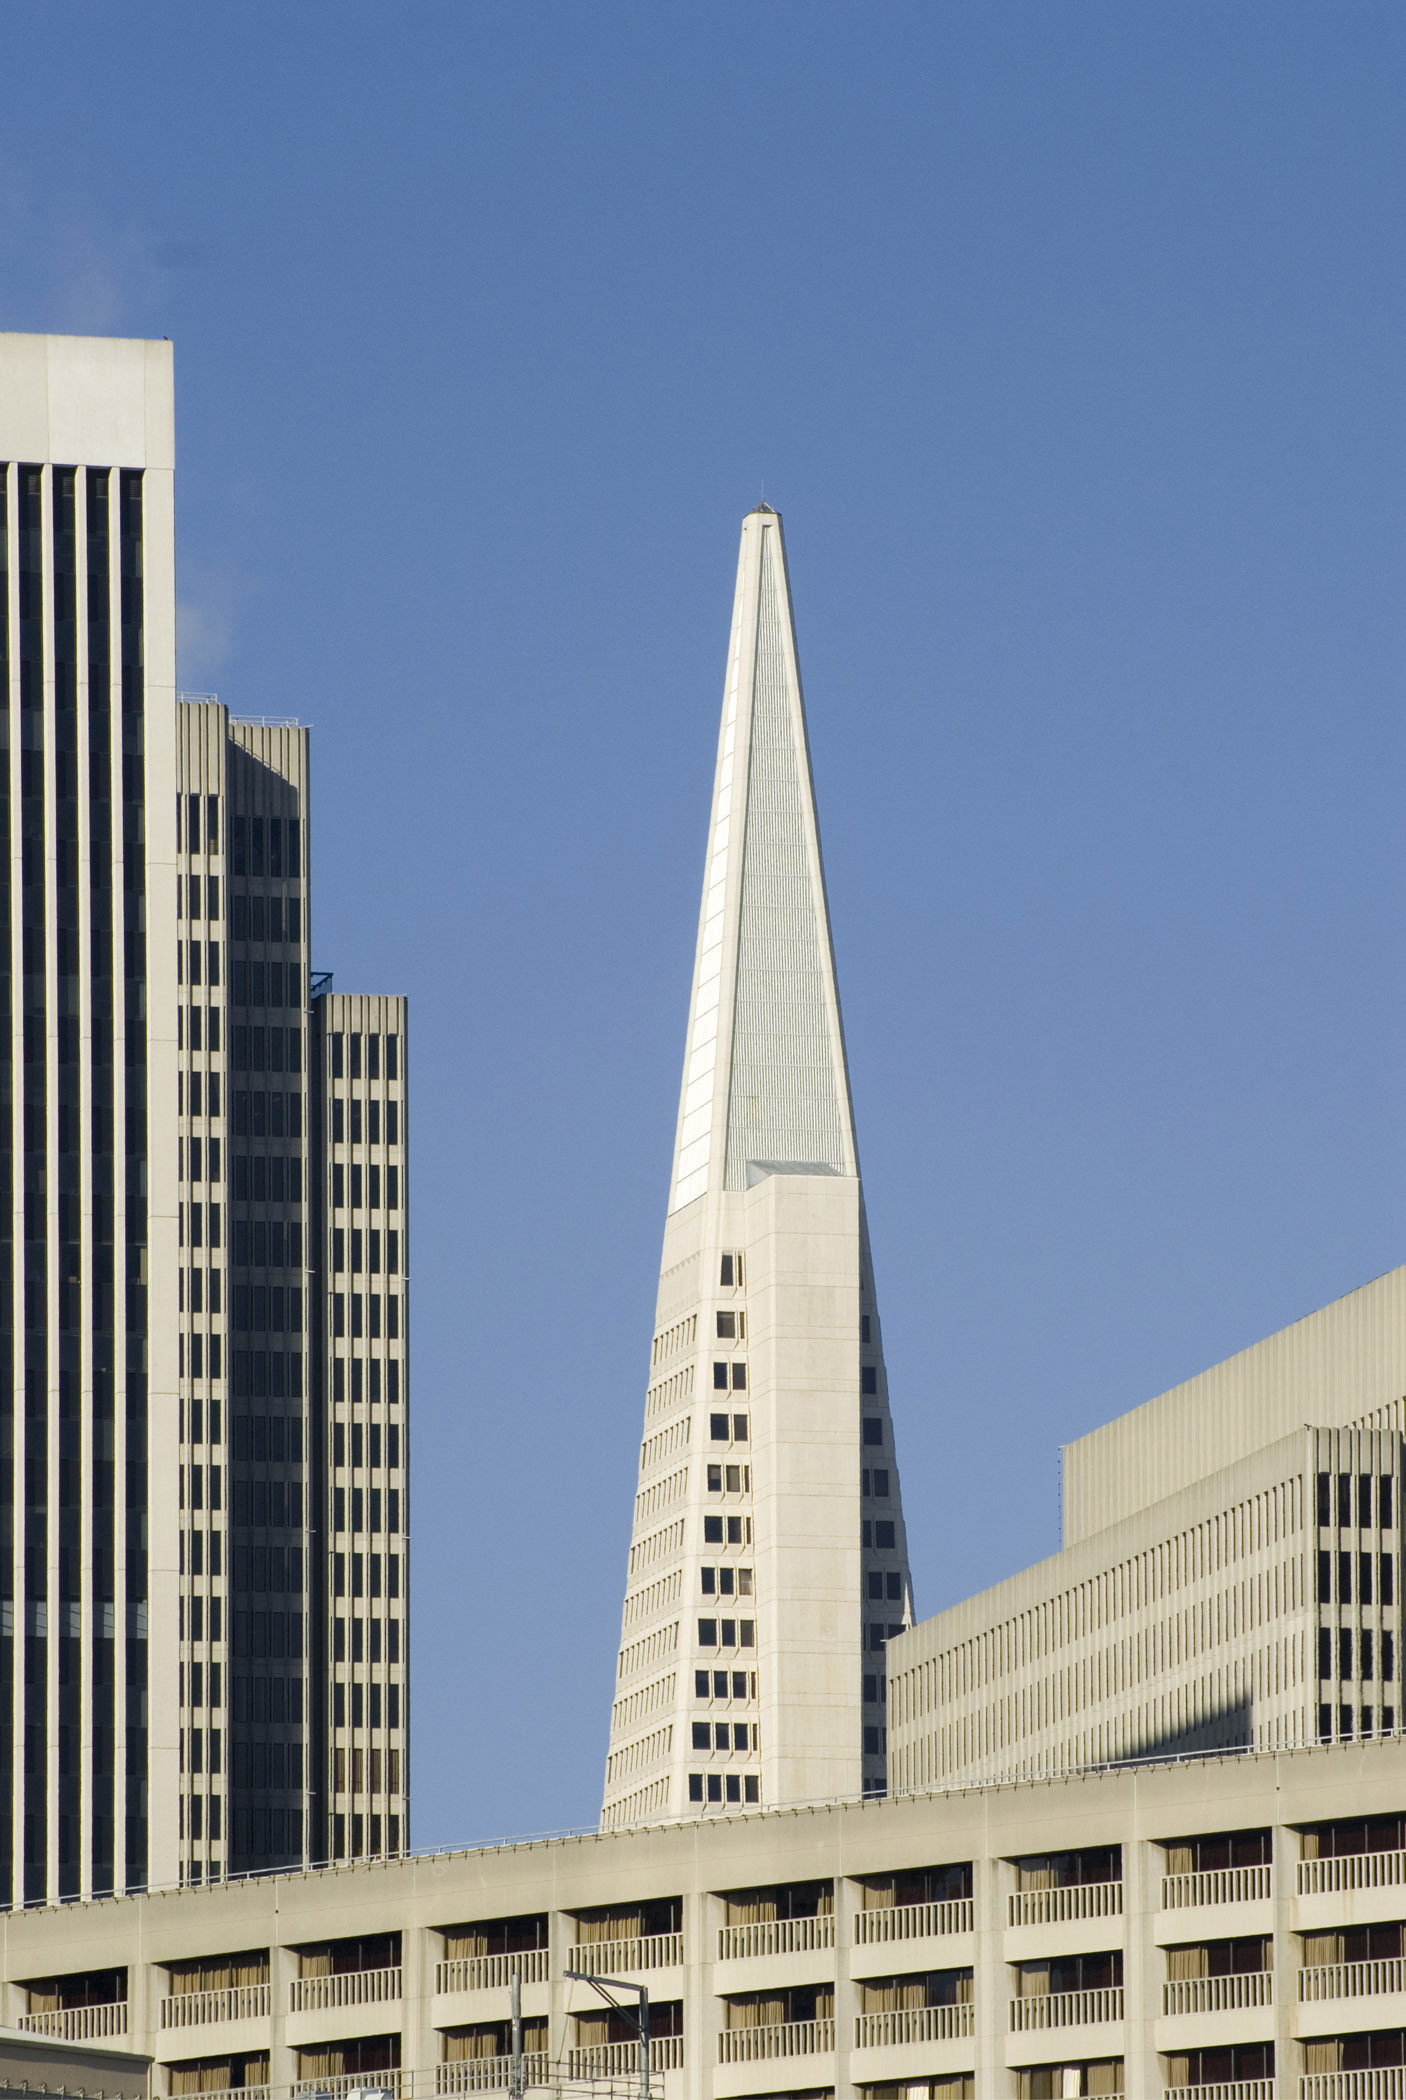 Architectural Tall Vintage Buildings at San Francisco on Blue Gray Sky Background.